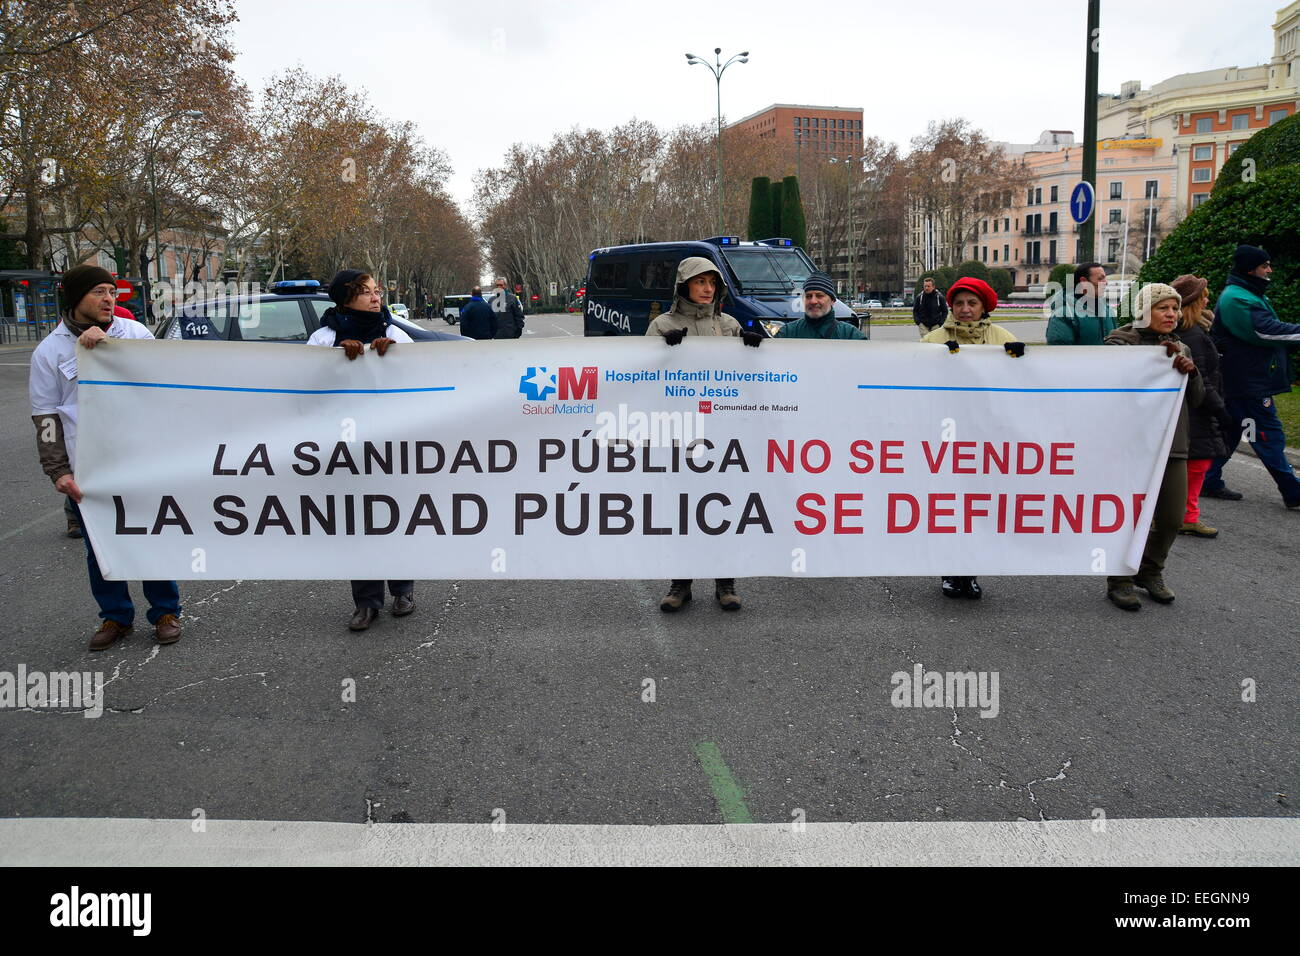 18th Jan, 2015. A banner against healthcare funding cuts during a demonstration in Madrid, Spain. Credit:  Marcos - Stock Image